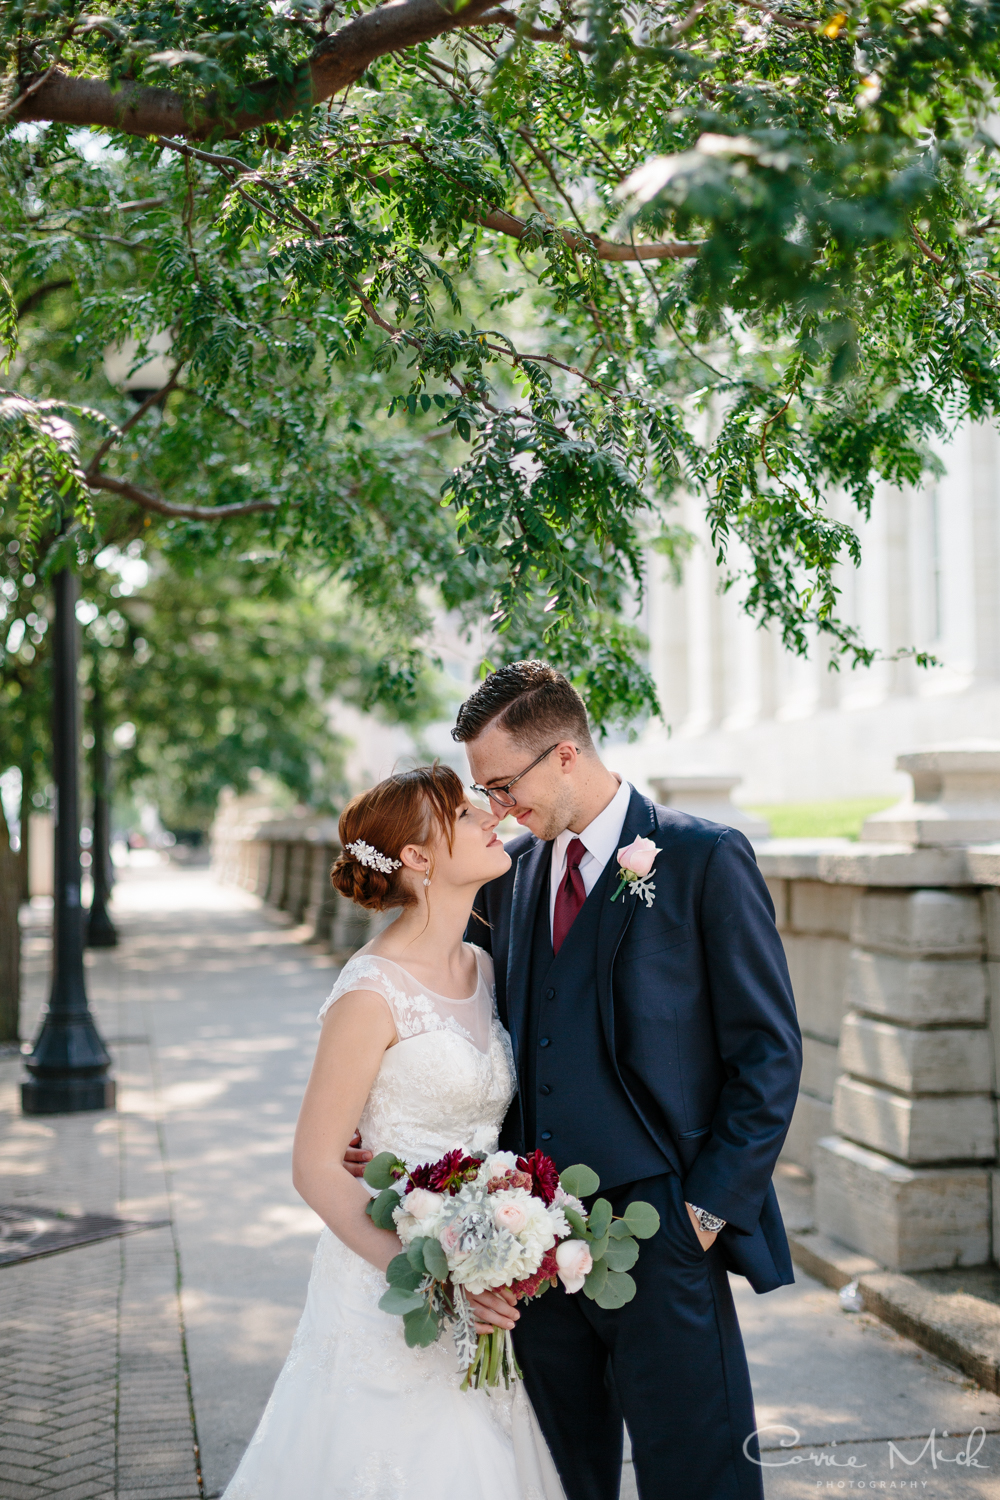 Elegant, Top of the Market Ohio Wedding - Corrie Mick Photography - Portland, Oregon Photographer-141.jpg